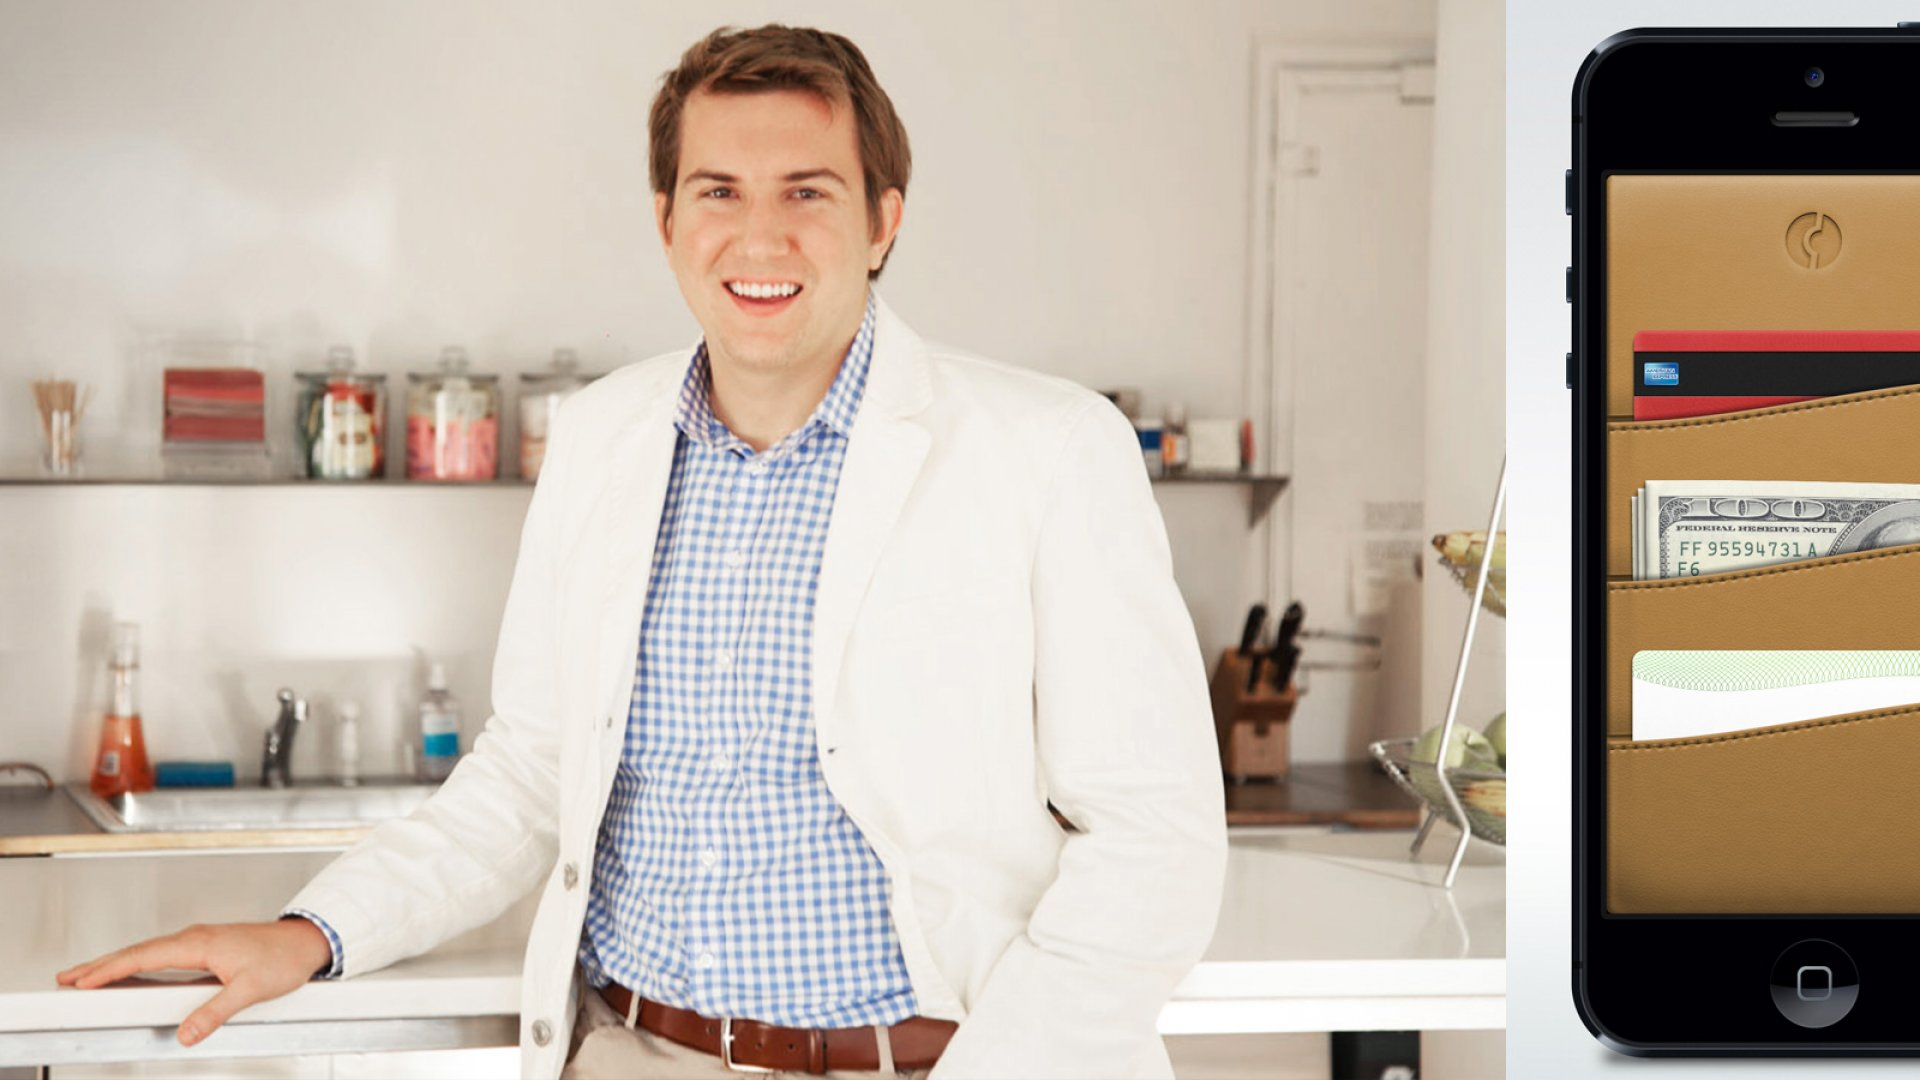 Inside Clinkle: A Stanford Kid Got $30 Million and Then Everything Blew Up